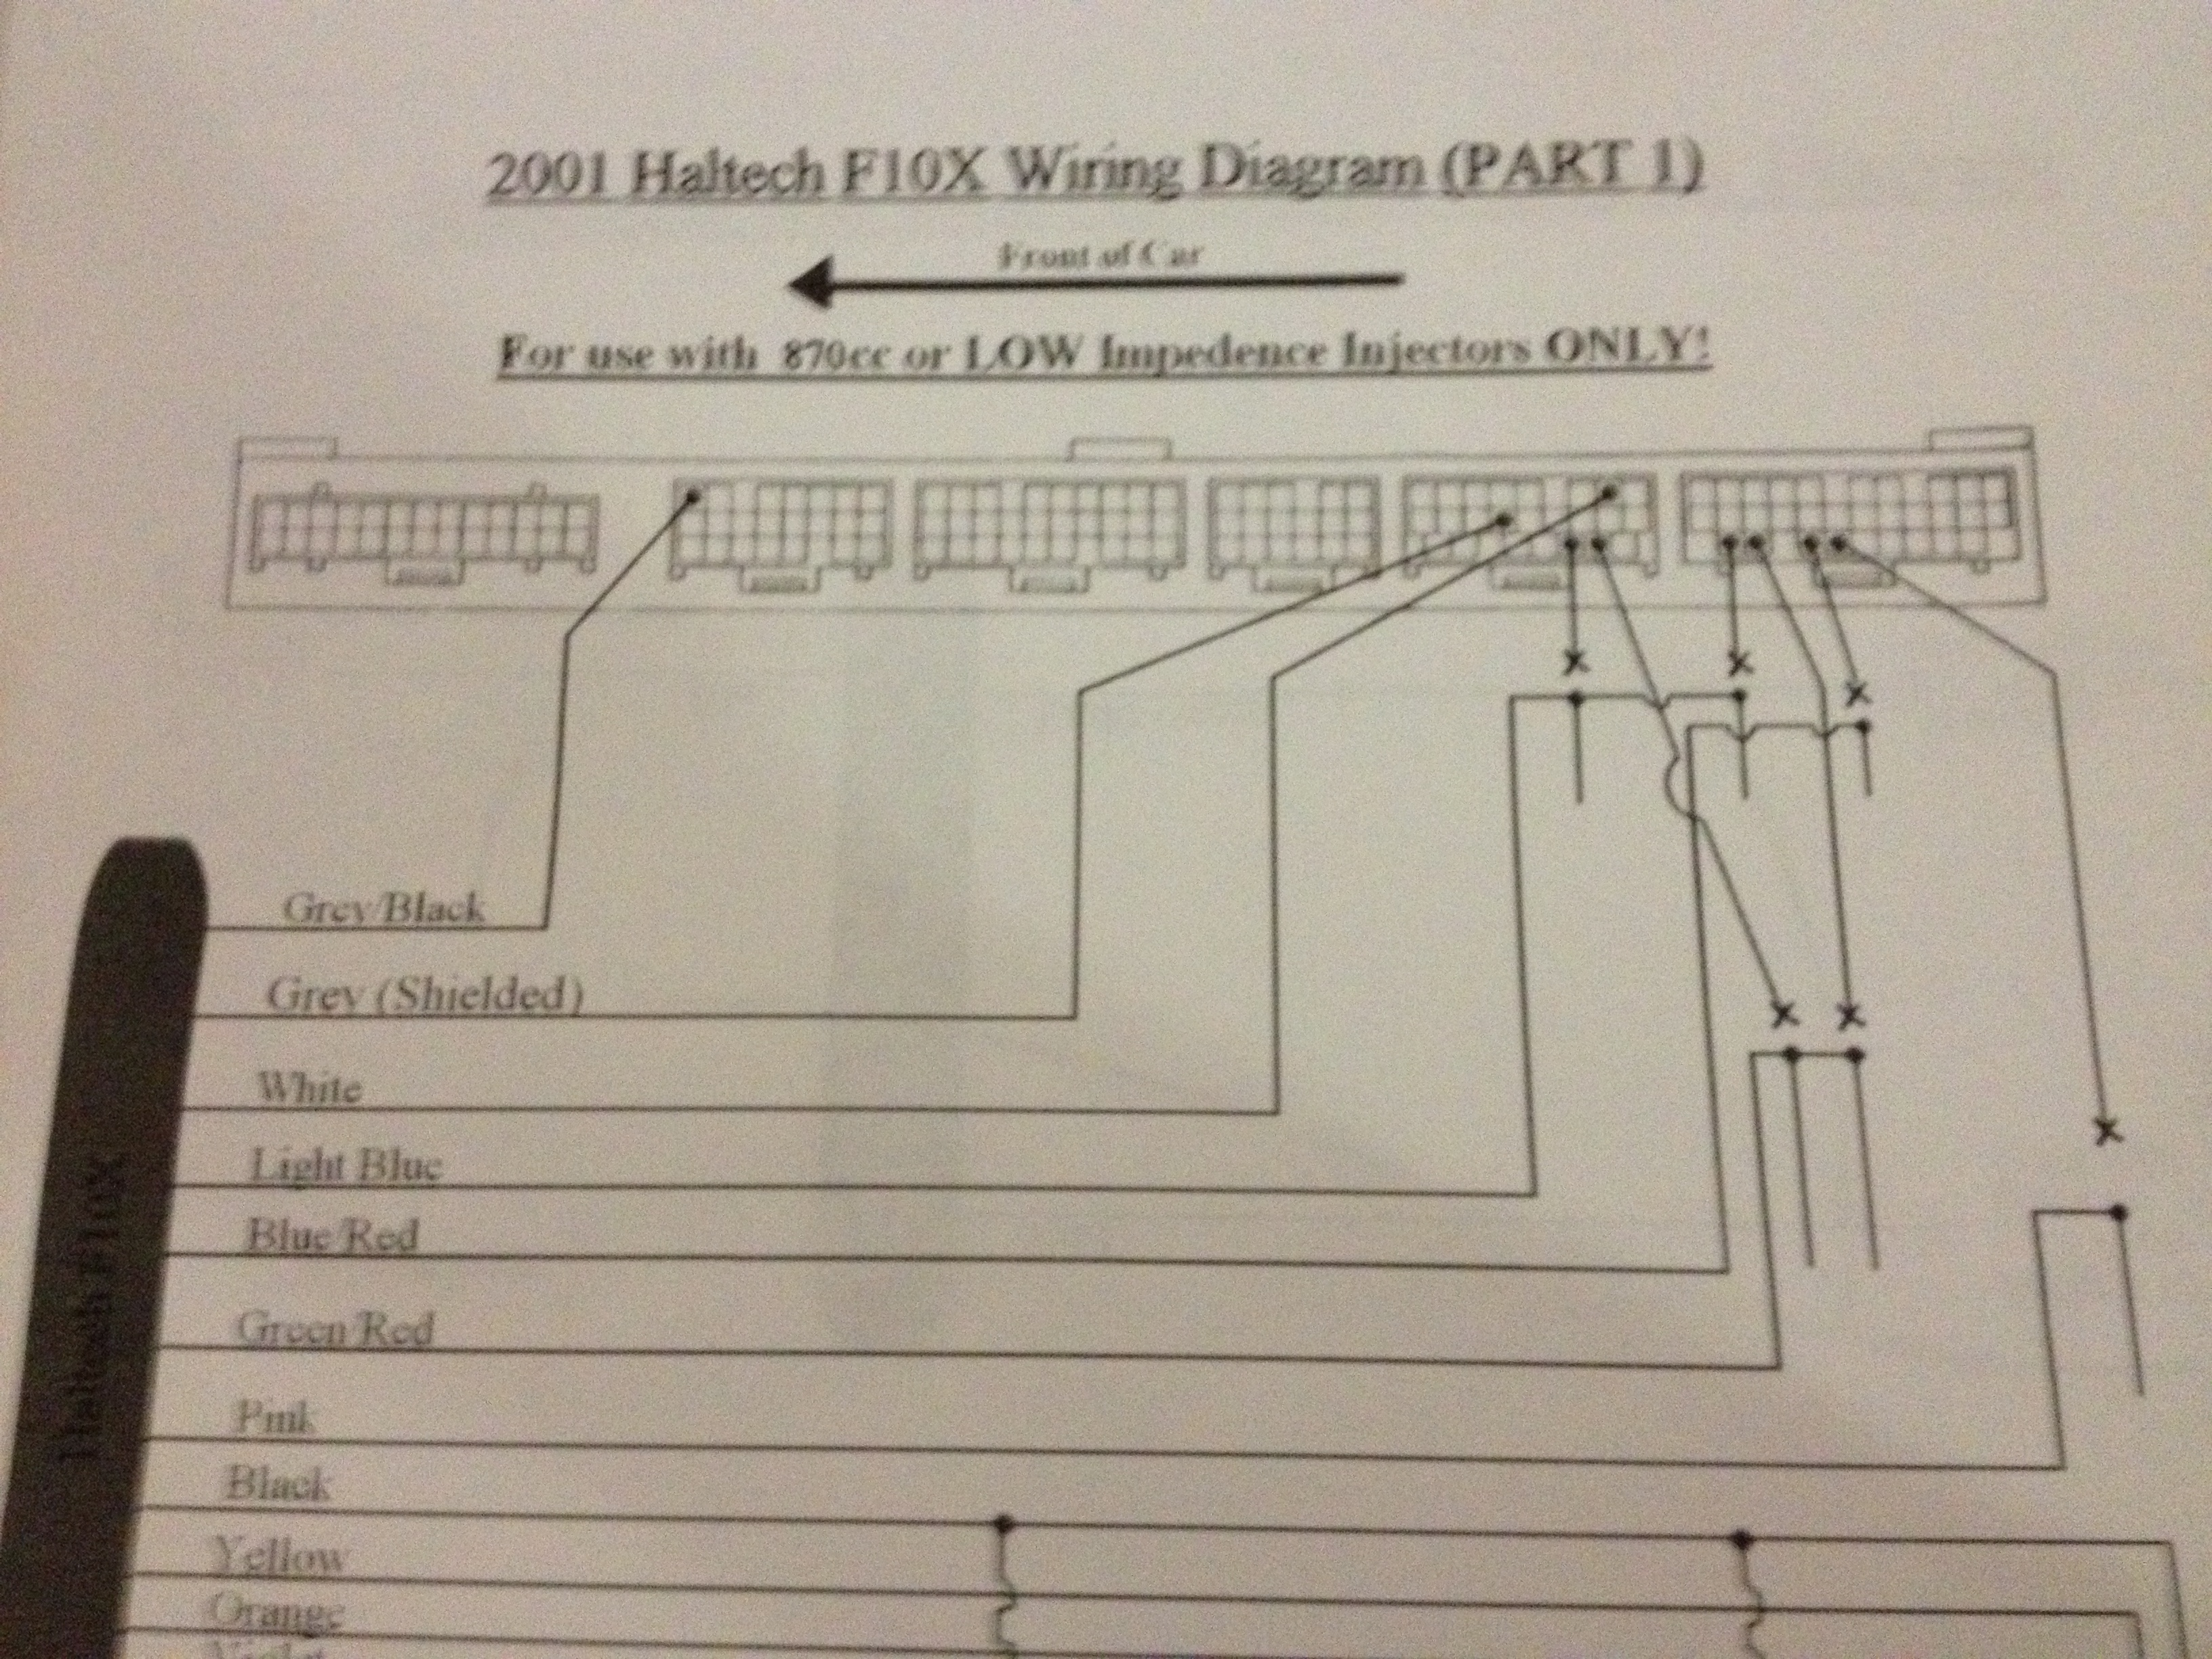 37210d1363570936 help f10x high impedance injectors wiringdiagram help with f10x high impedance injectors lexus is forum haltech f10x wiring diagram at mr168.co